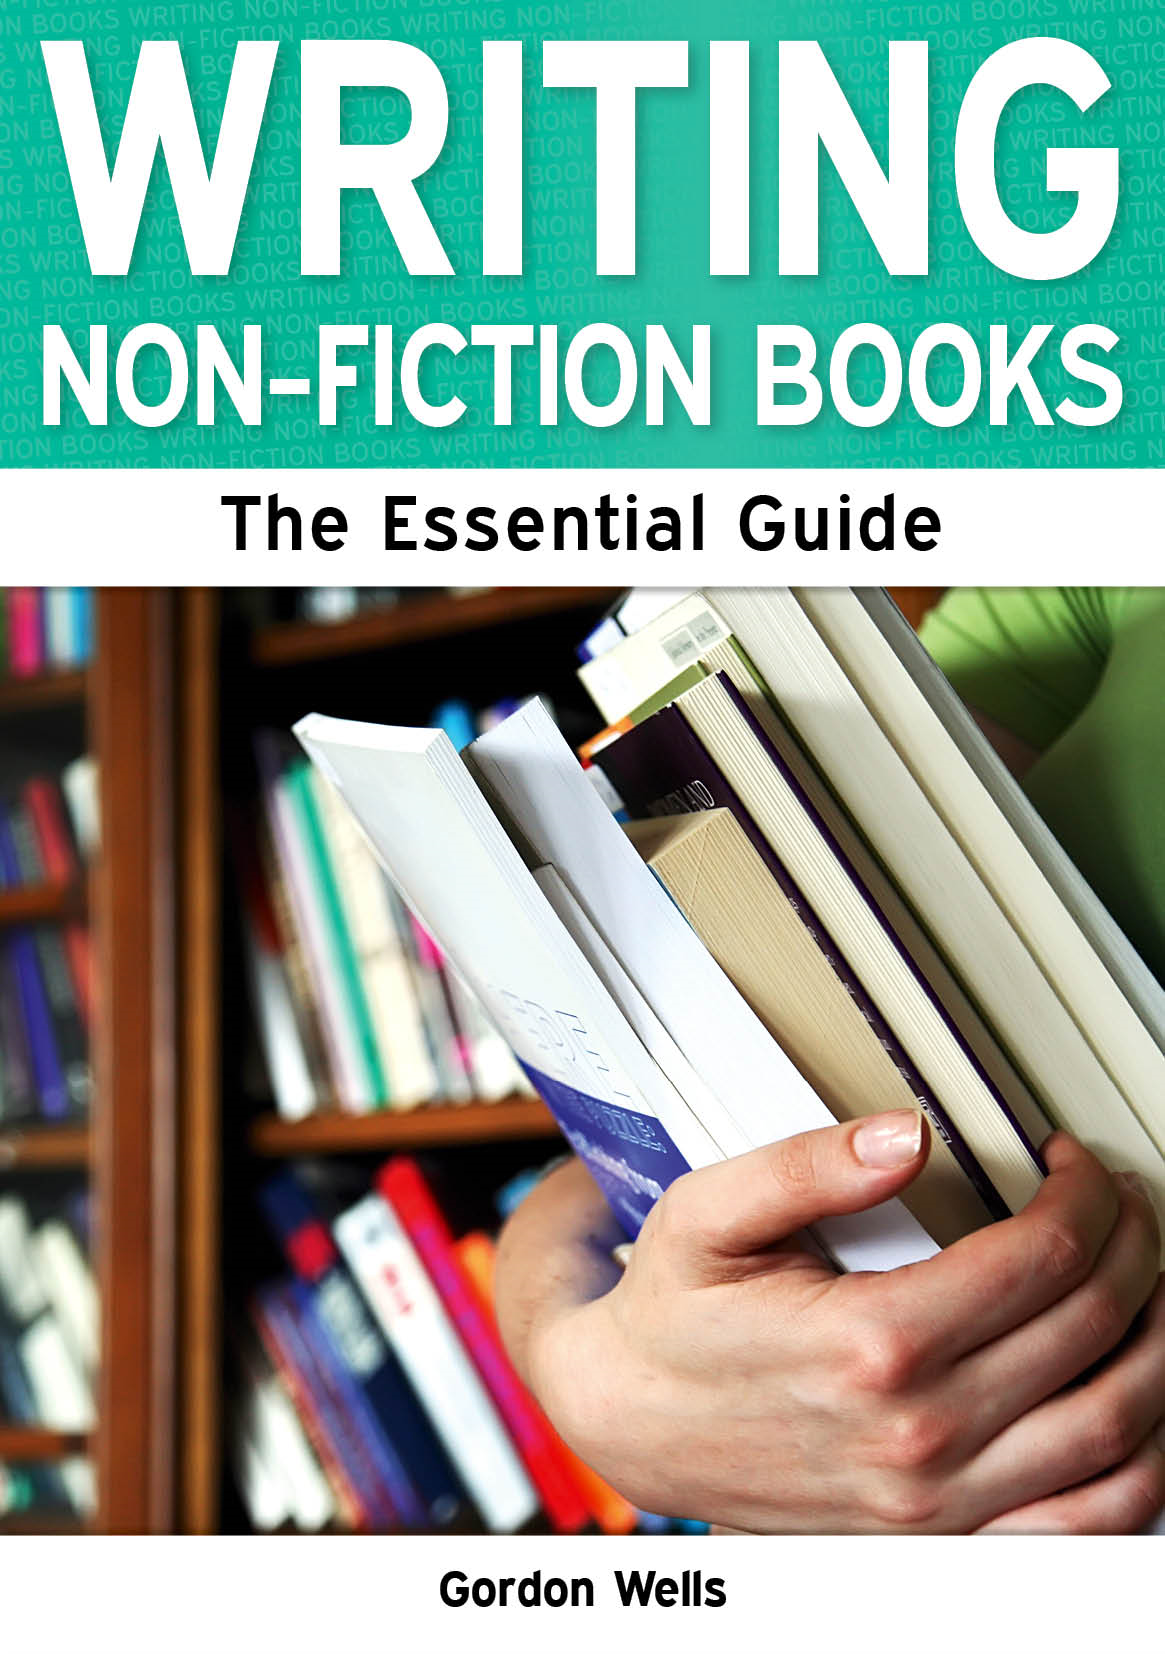 Writing Non-Fiction Books: The Essential Guide